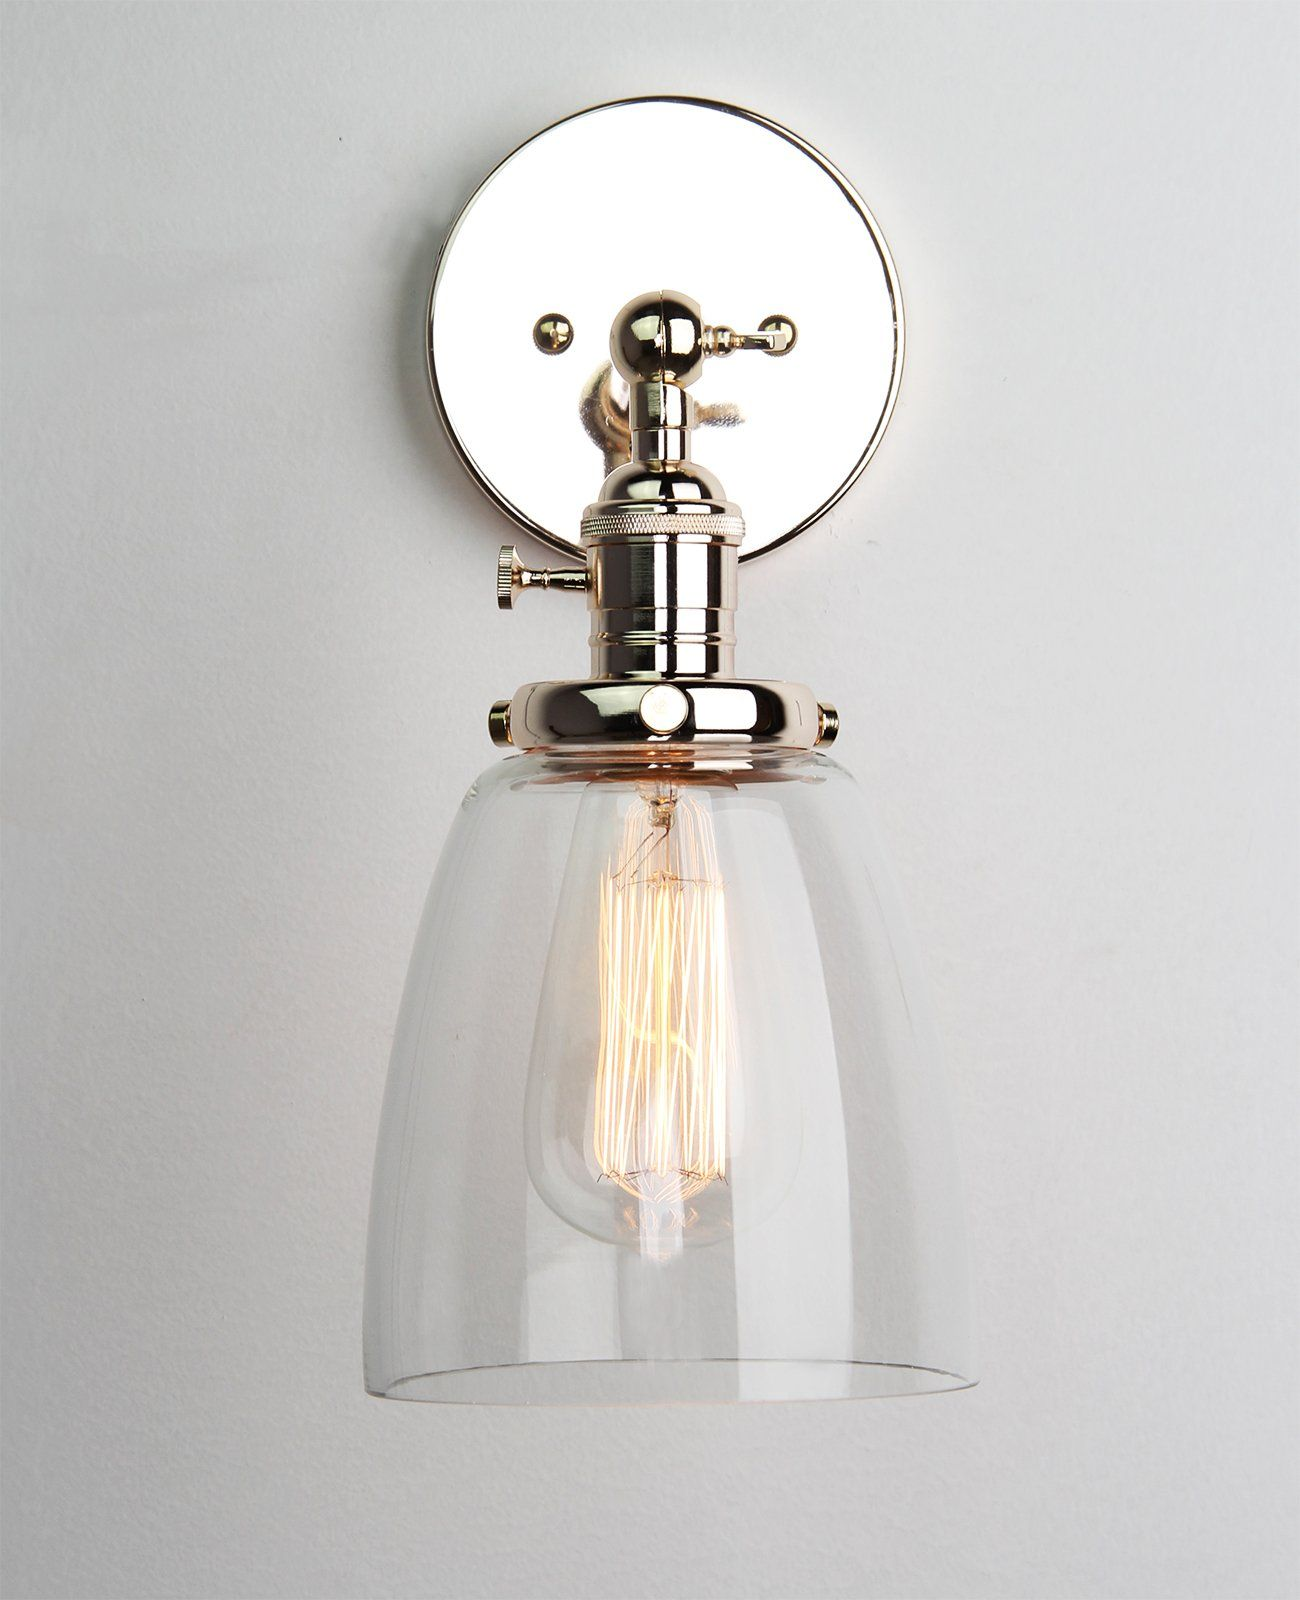 Industrial Bathroom Wall Sconces : Permo Industrial Edison Antique Single Sconce With Oval Cone Clear Glass Shade 1-light Wall ...